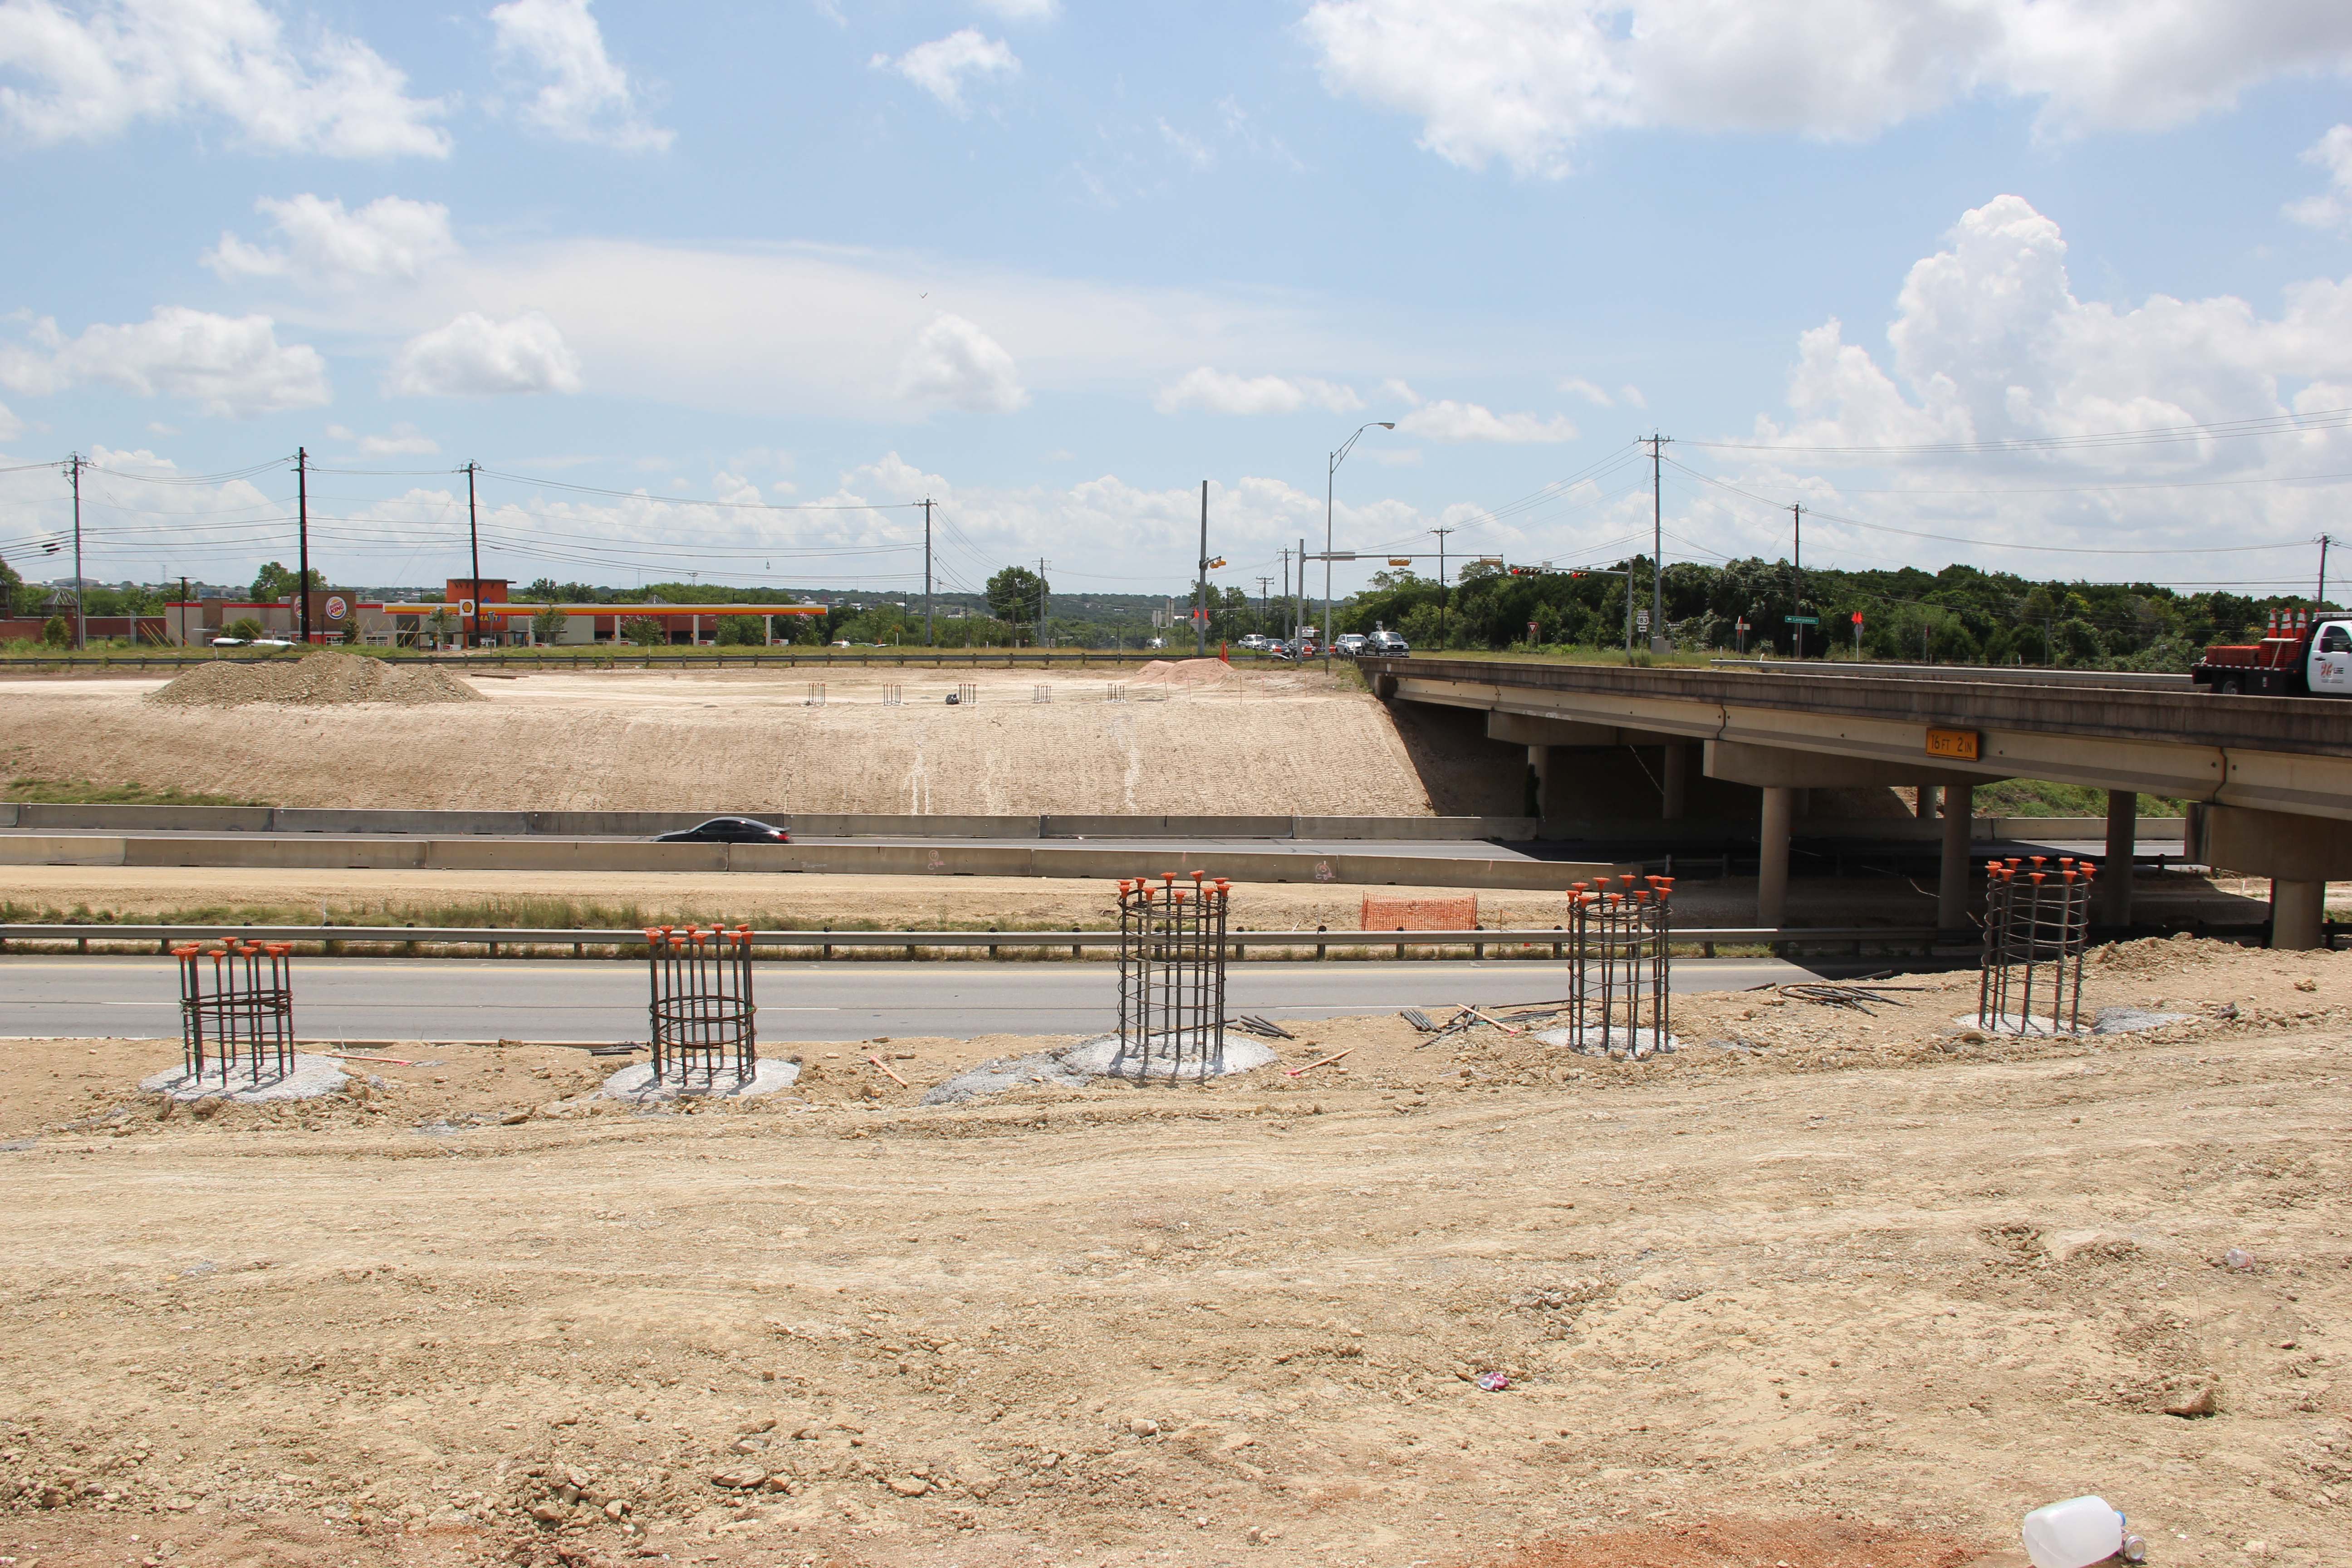 Bridge foundations for new MLK Blvd crossing